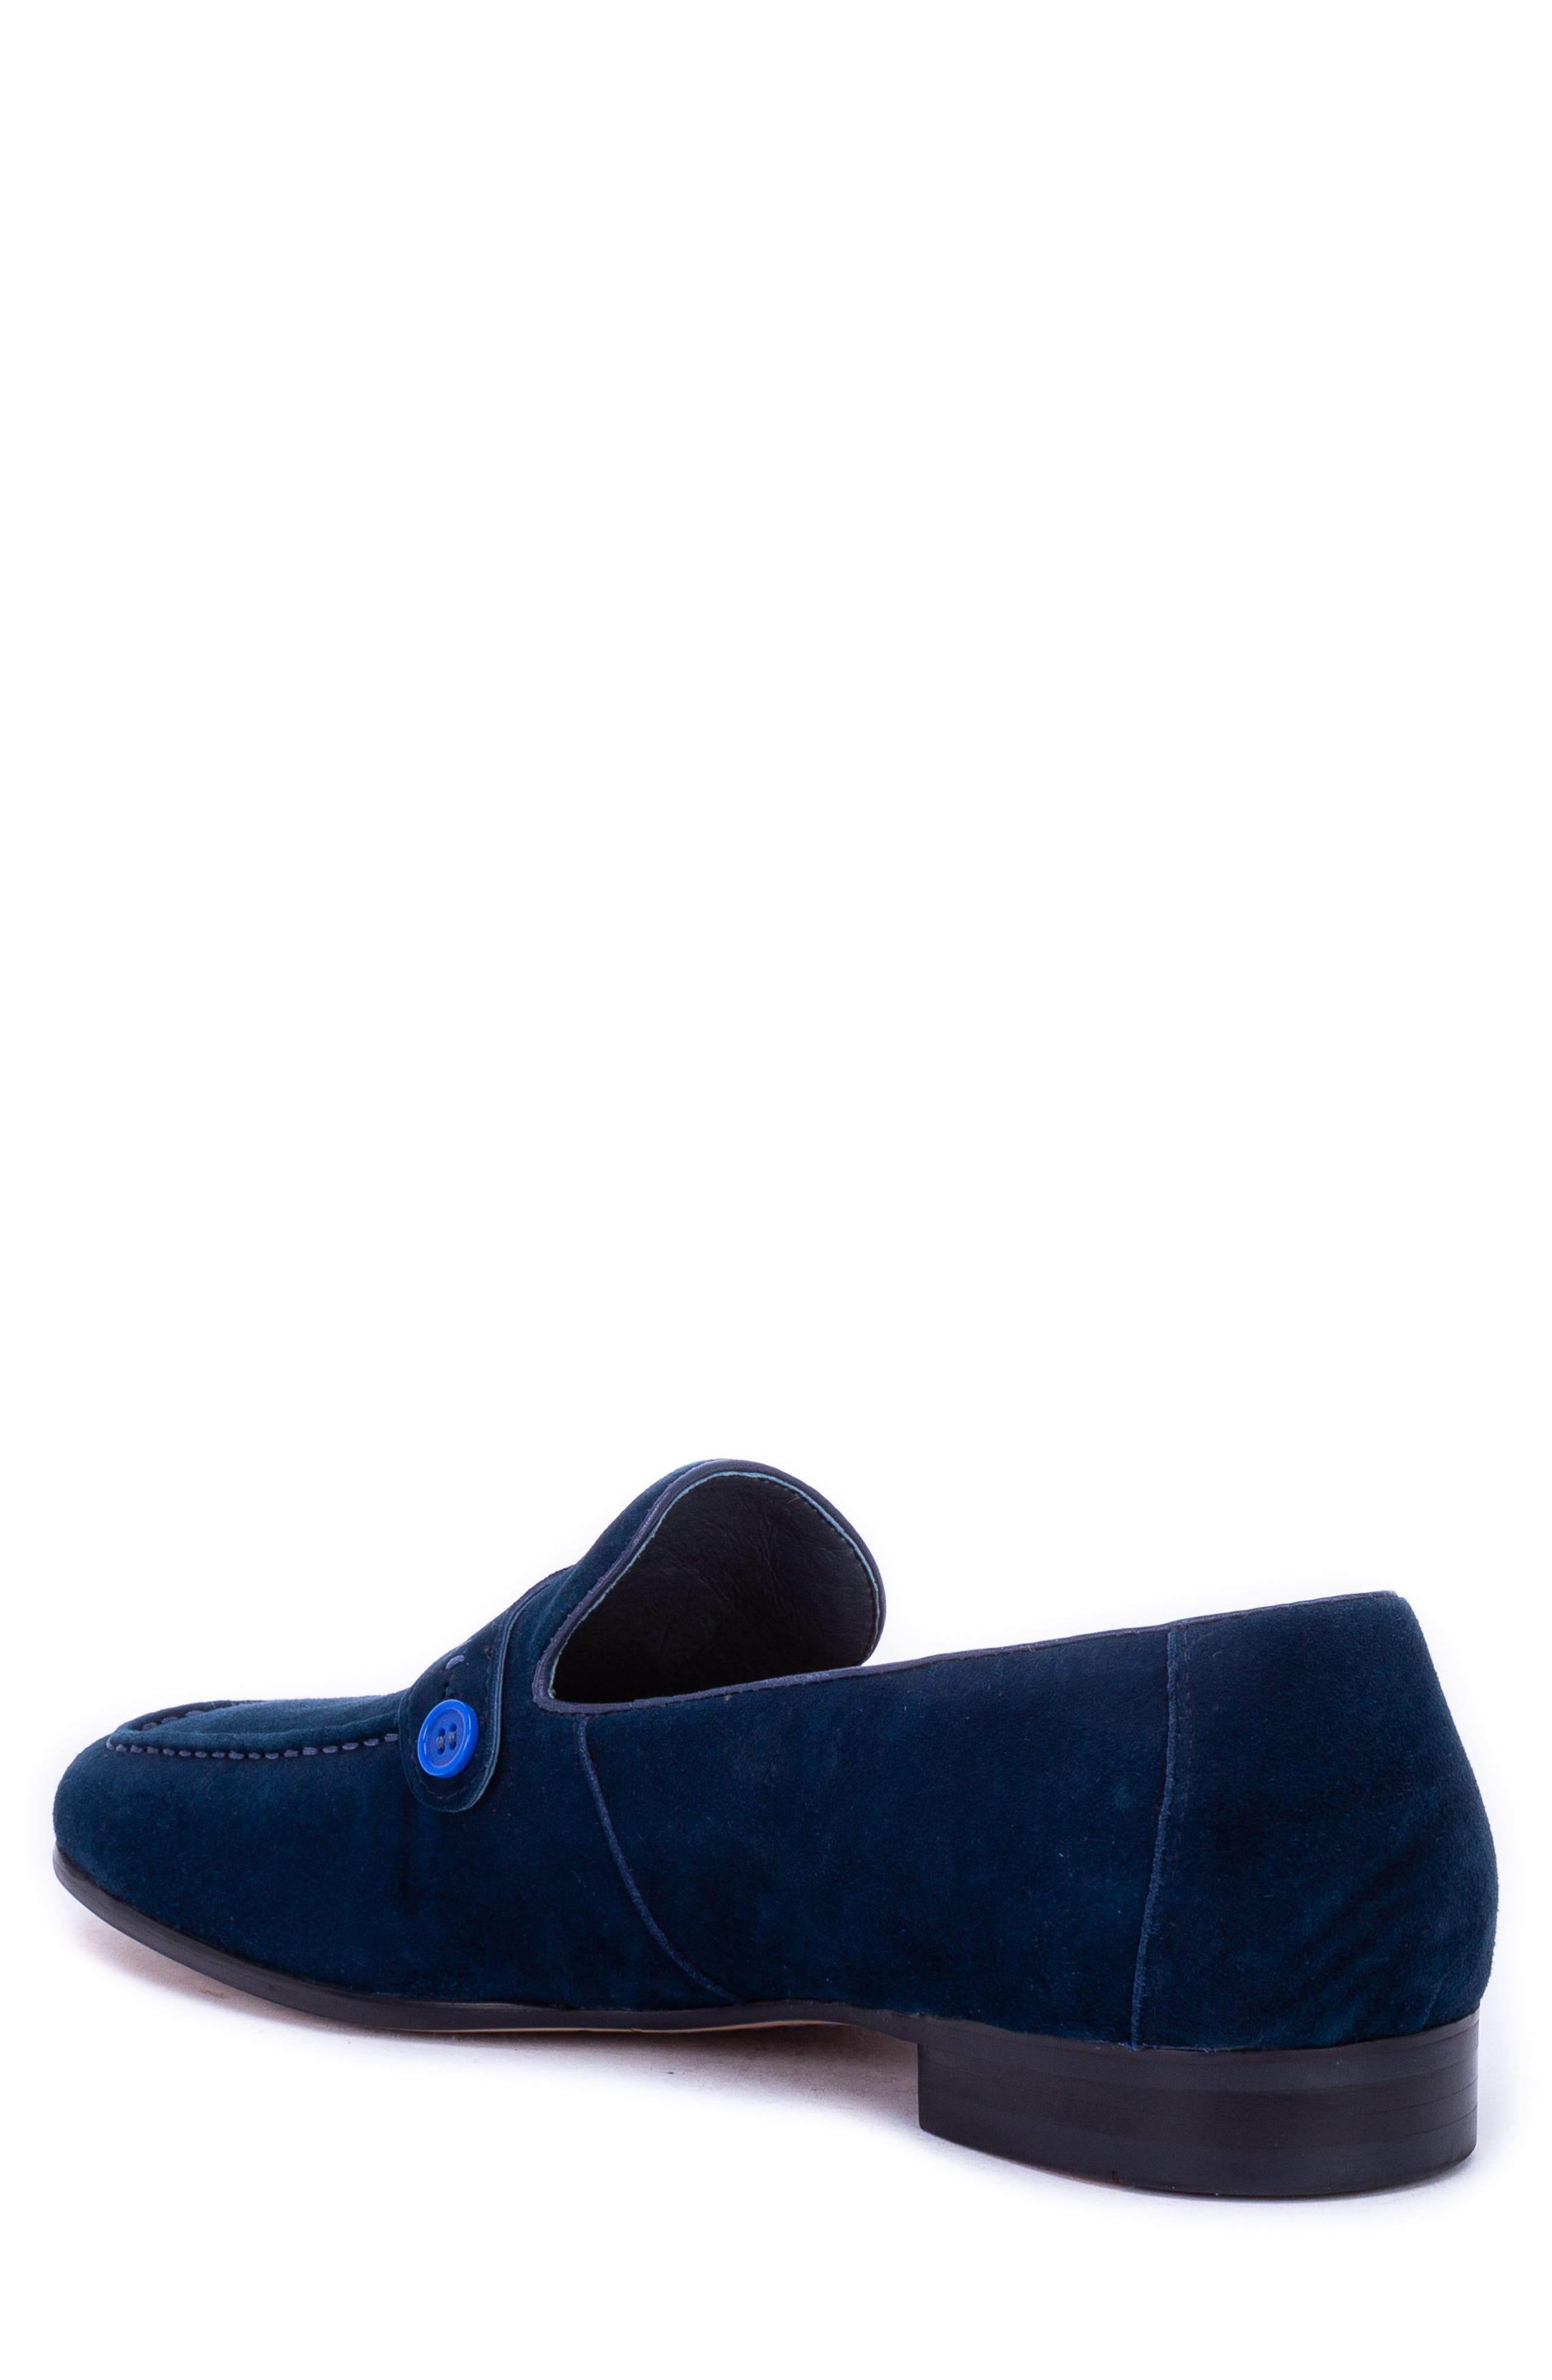 Brown Loafers Slip Ons Whats New For Men Nordstrom D Island Shoes Moccasine On Lacoste Suede Black